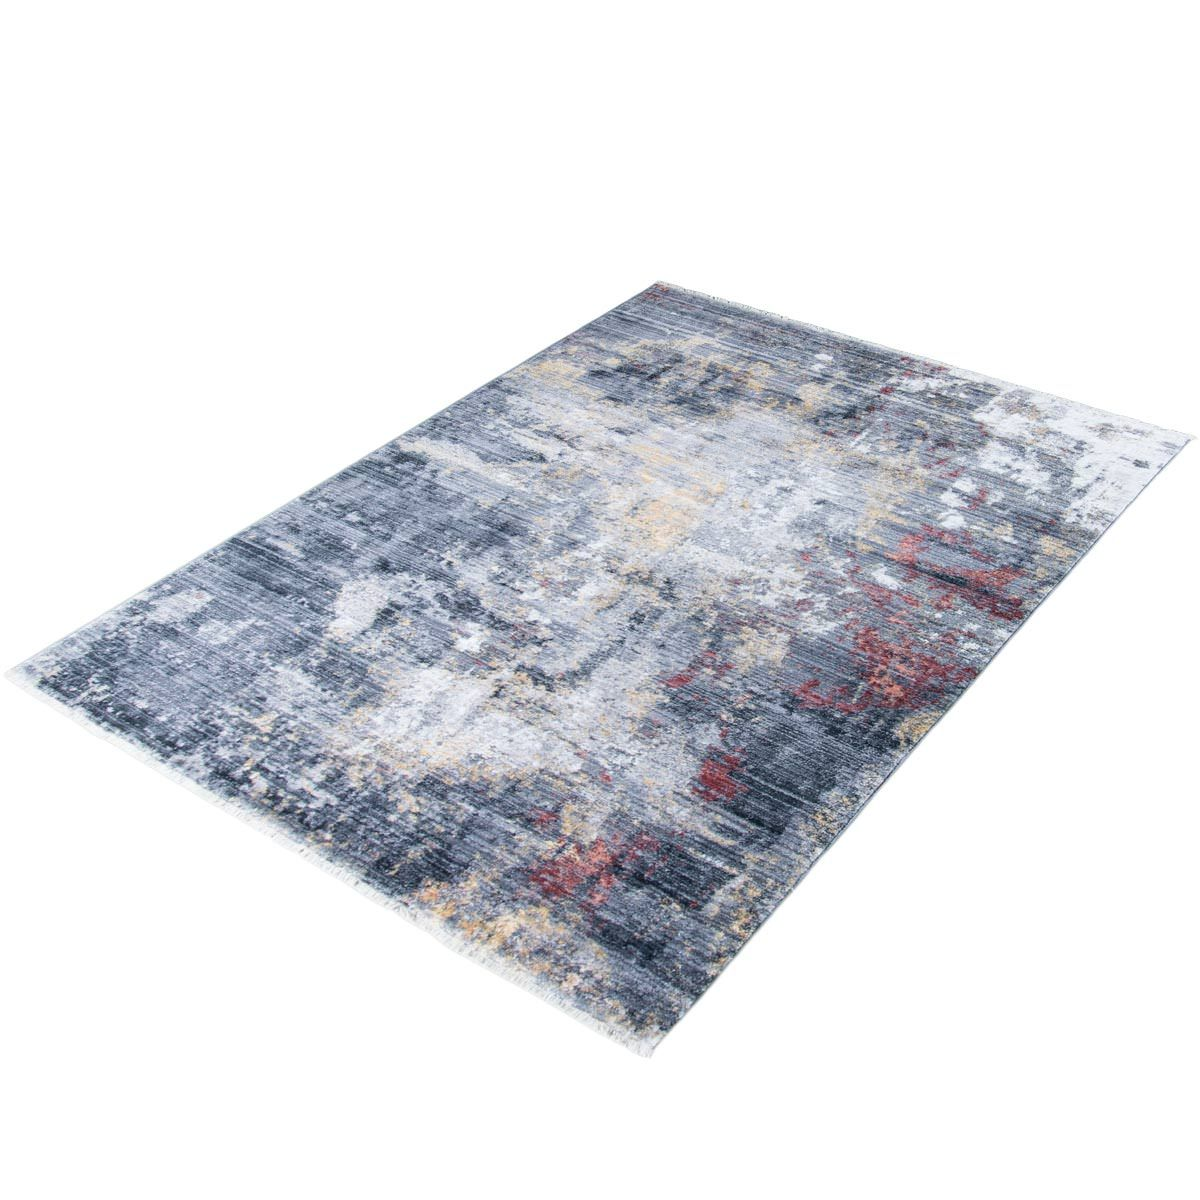 Istanbul Rug 02 Grey/Yellow/Orange 7